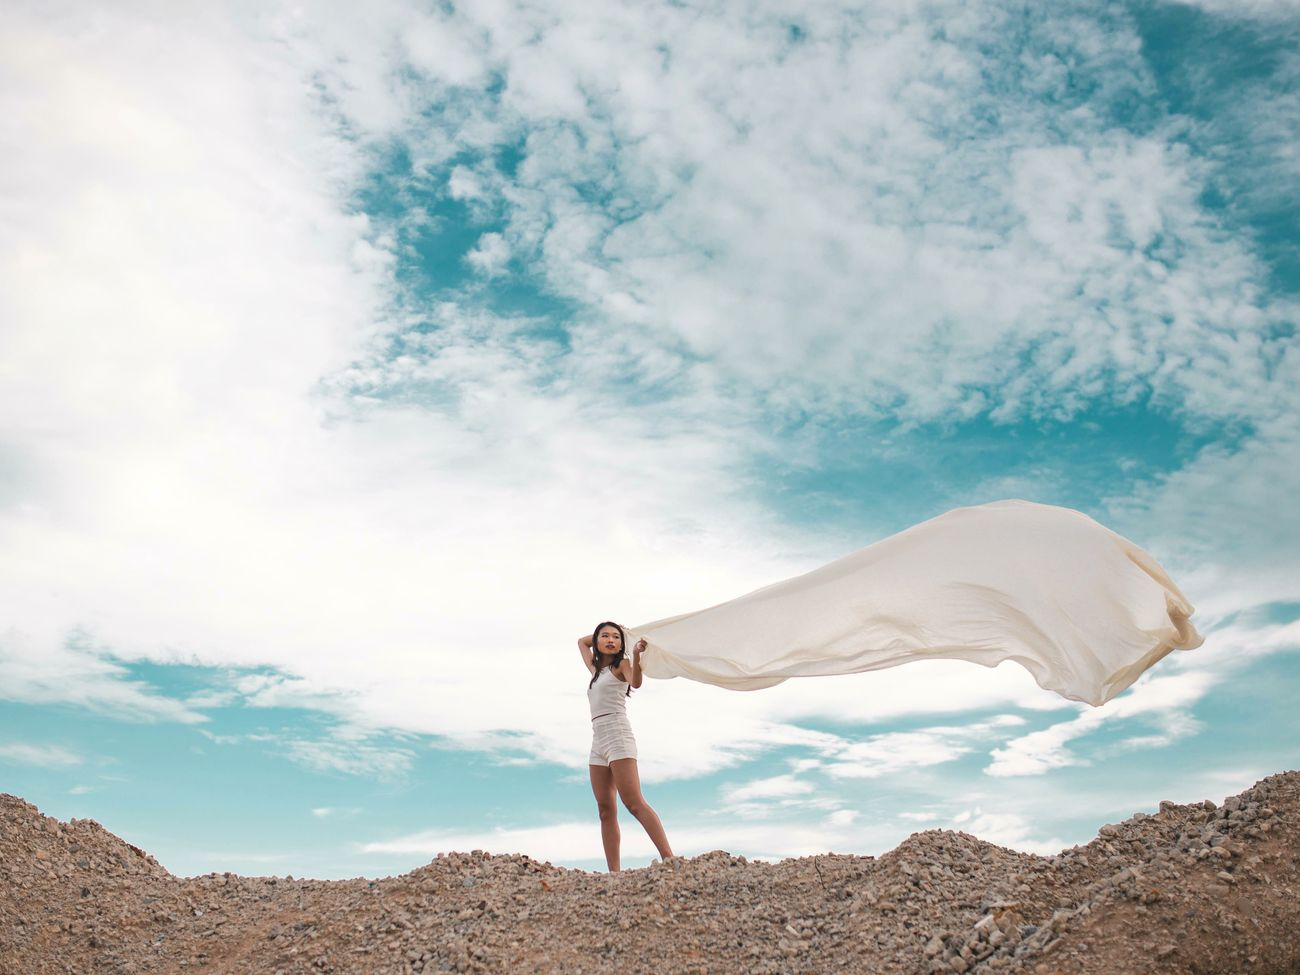 you, in the middle of the world Freedom Nature One Woman Only Cloud - Sky Outdoors Adventure Landscape Sky Portrait Standing Travel Destinations Women Around The World Beautiful People Tinypeopleinbigplaces Beauty In Nature Blue Sky And Clouds Blue Sky Clouds